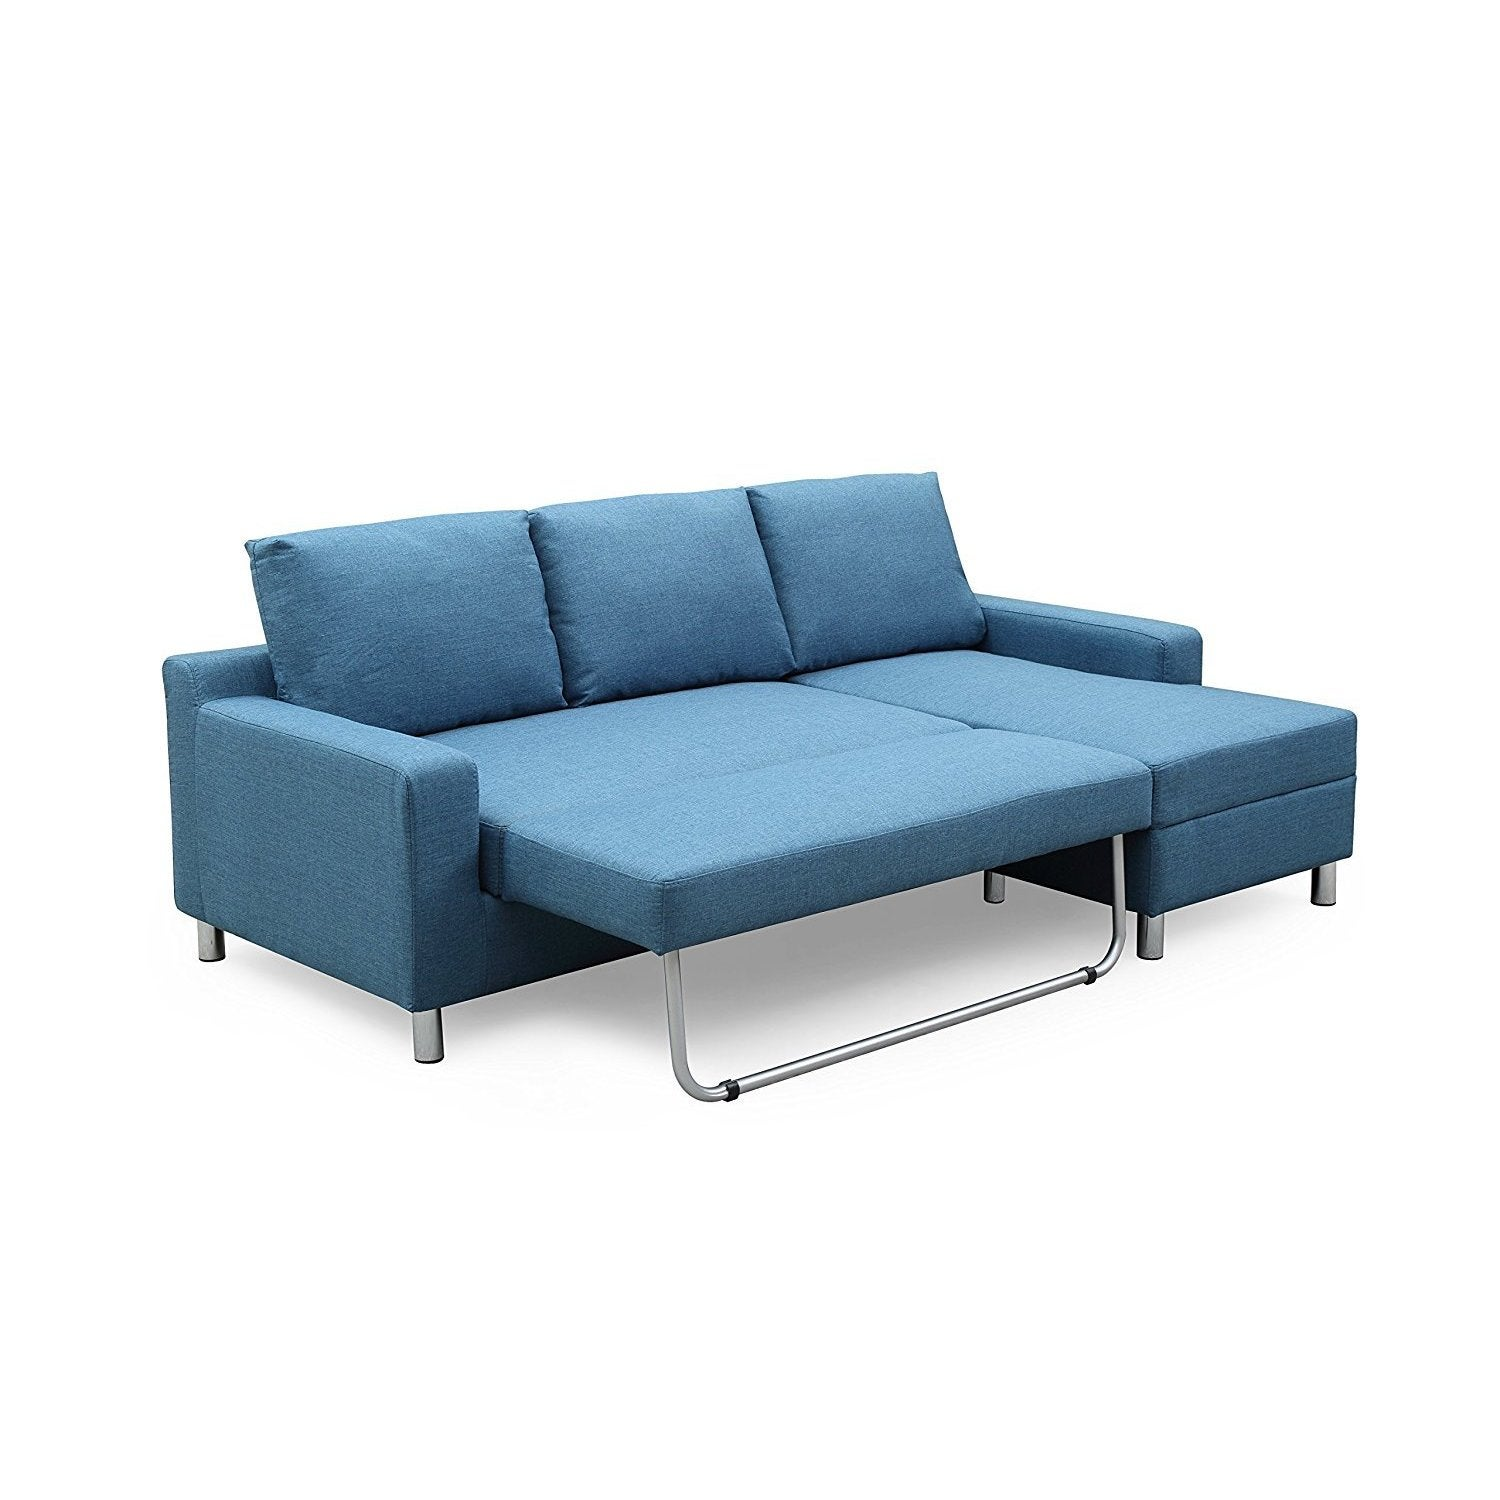 Shop US Pride Furniture Hampton Linen Fabric Sectional Sofa with ...